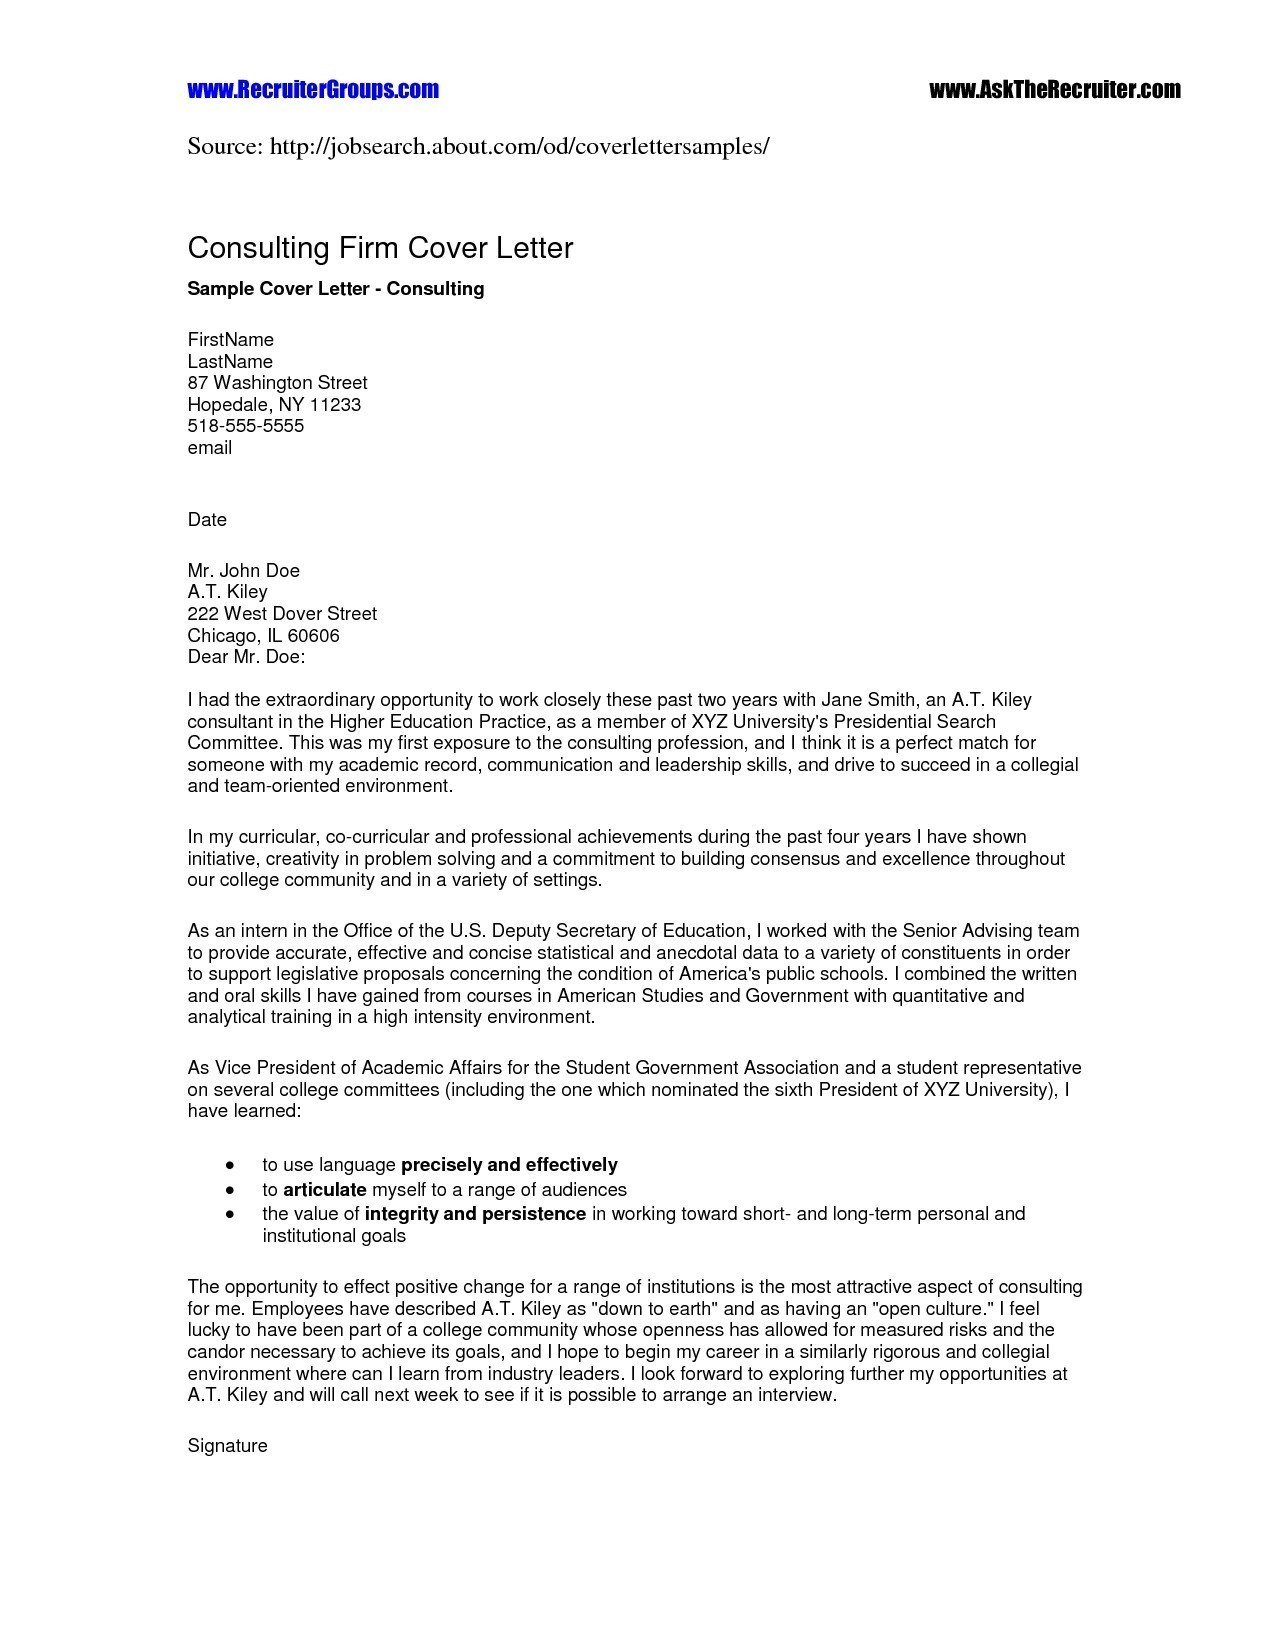 short cover letter template Collection-Job Application Letter format Template Copy Cover Letter Template Hr Fresh A Good Cover Letter Sample 3-g